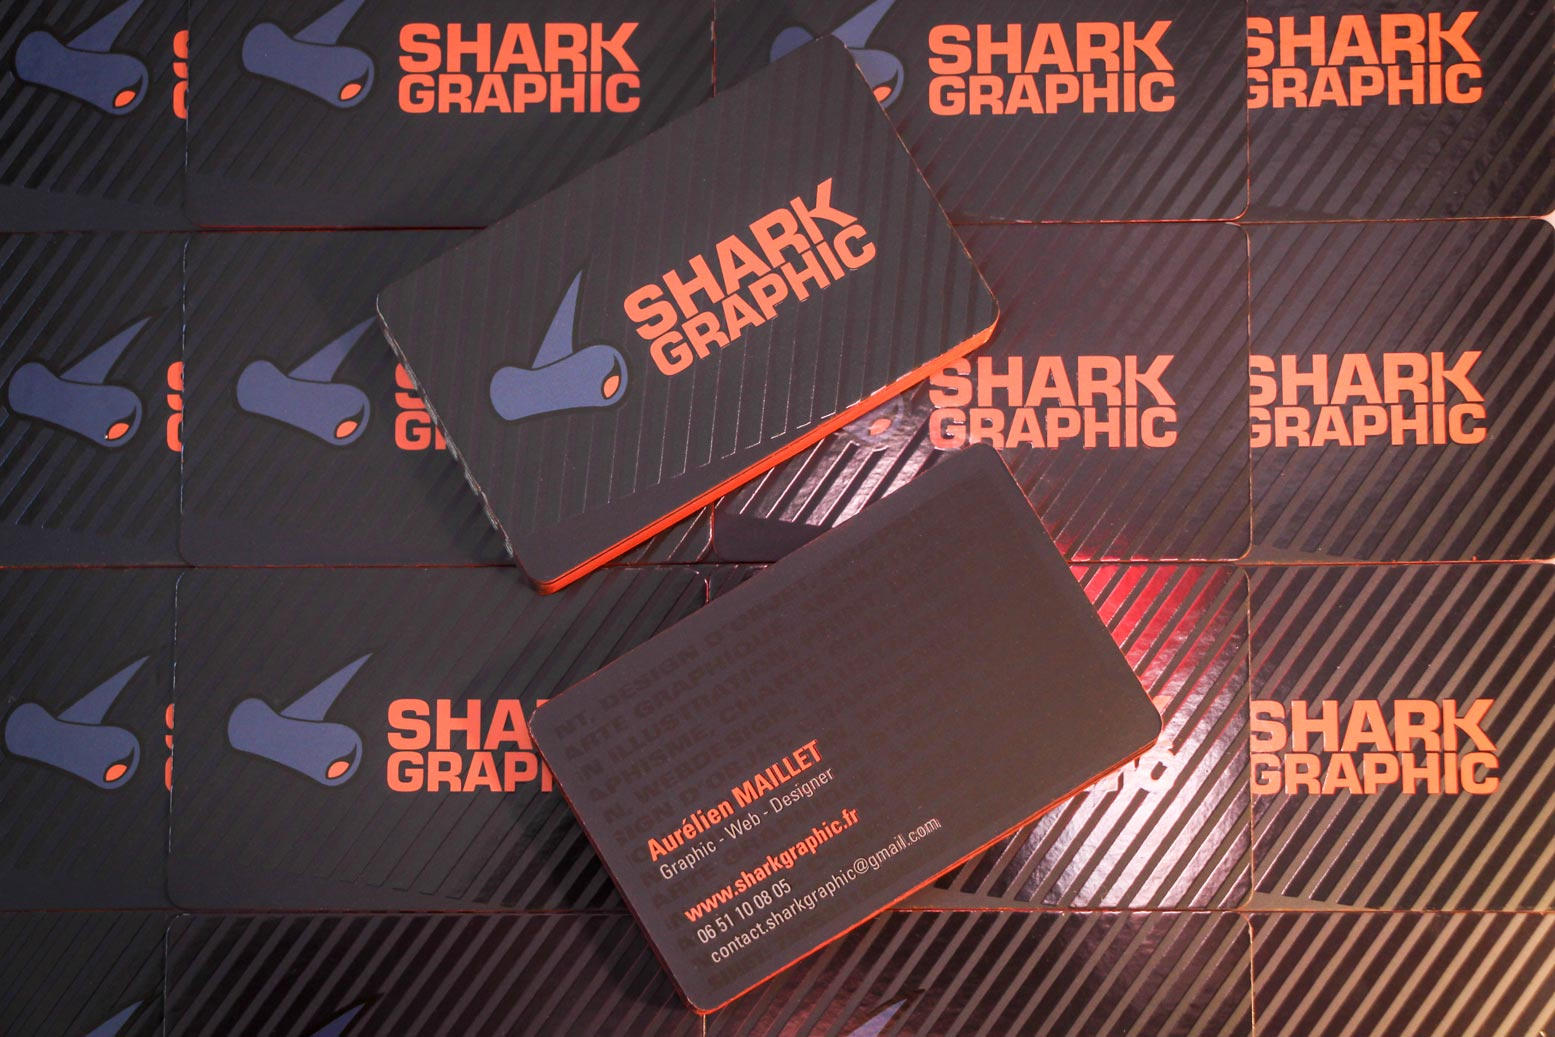 Cartes-de-visite-concept-situation-Sharkgraphic